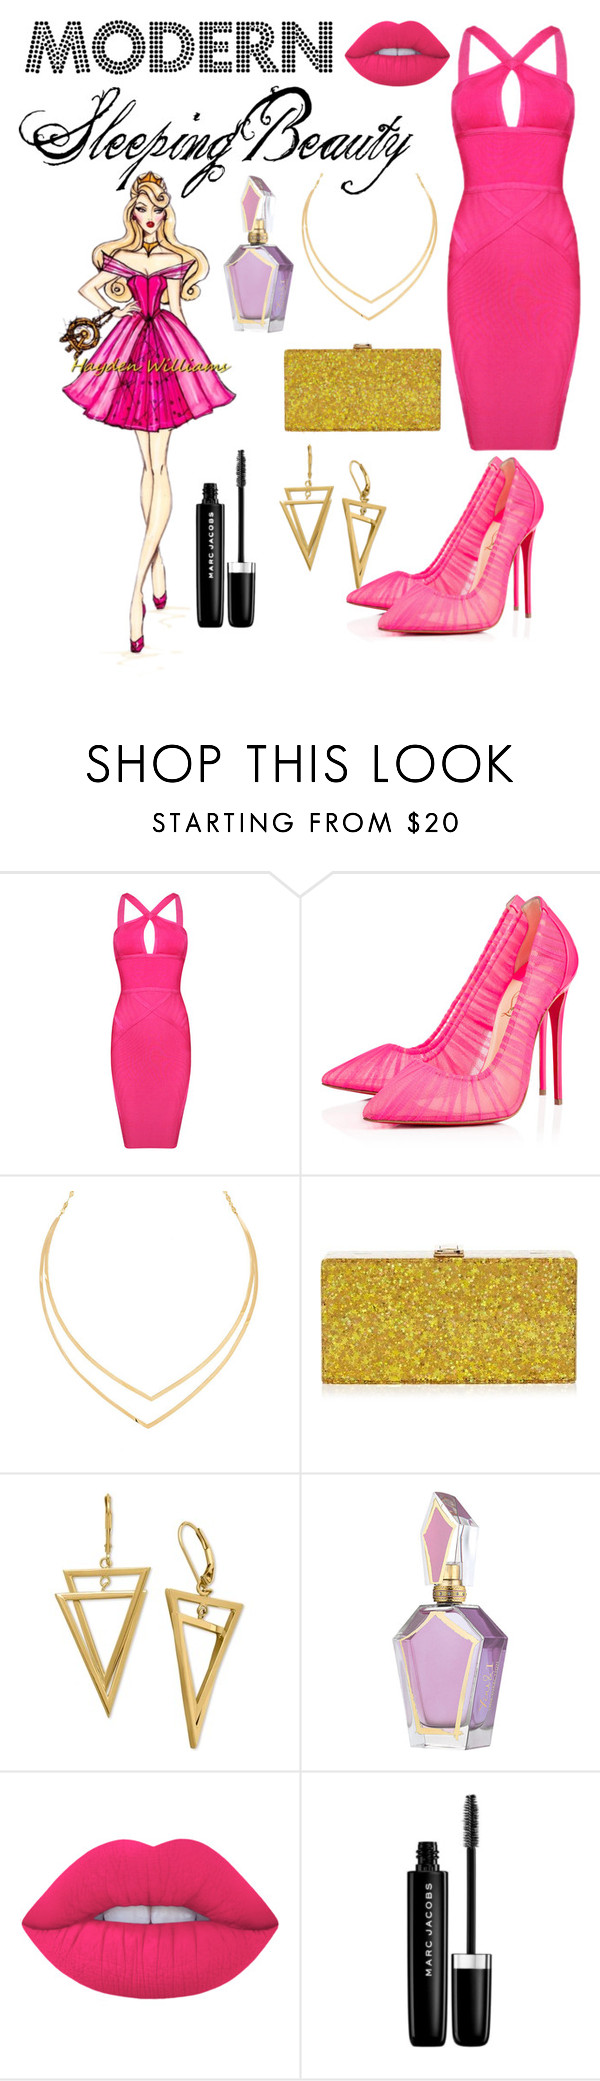 """Modern Sleeping beauty"" by vale-fer2801 on Polyvore featuring moda, Disney, Posh Girl, Christian Louboutin, Lana, Milly, Lime Crime, Marc Jacobs y modern"